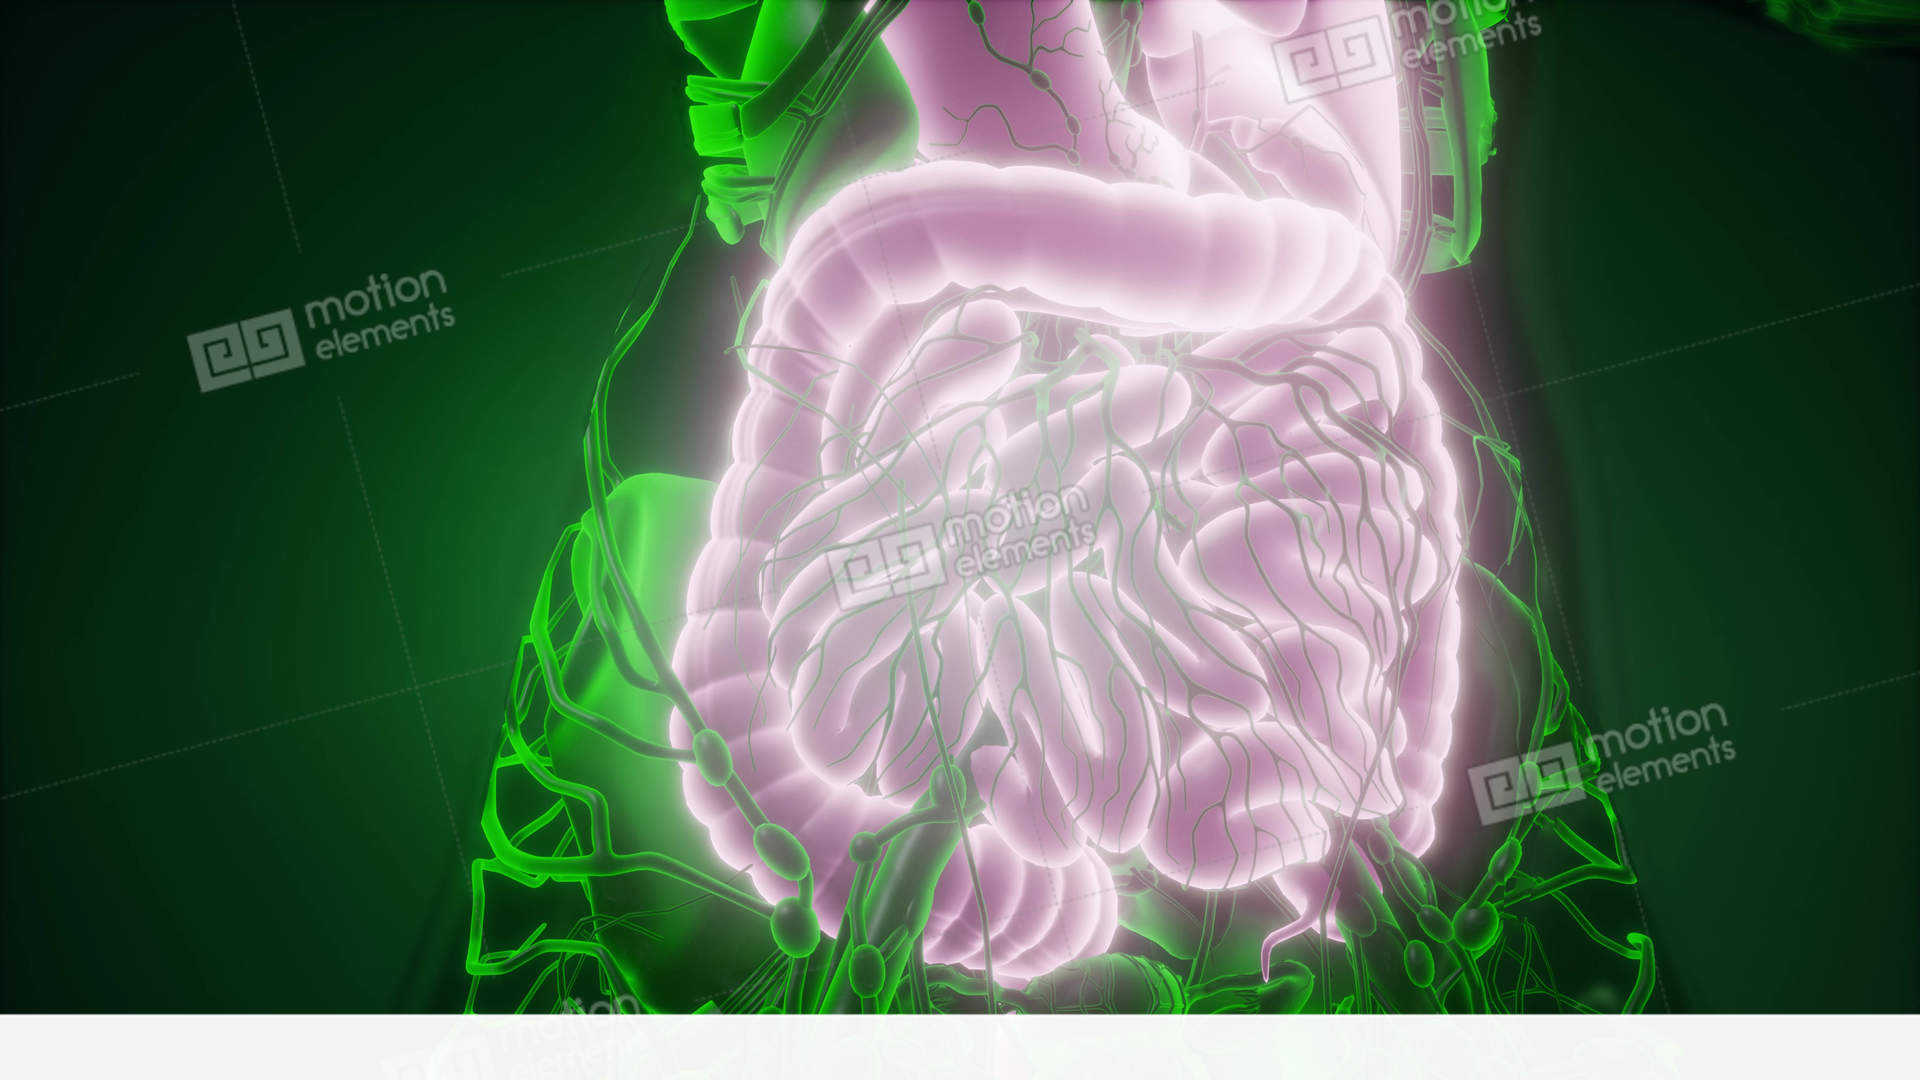 effect of alpha galactosidase on digestive system Severity of symptoms depends on how low your system is in the digestive enzymes causes the enzyme alpha-galactosidase is necessary to turn the glucose in complex carbohydrates into digestible hydrolyzed material.